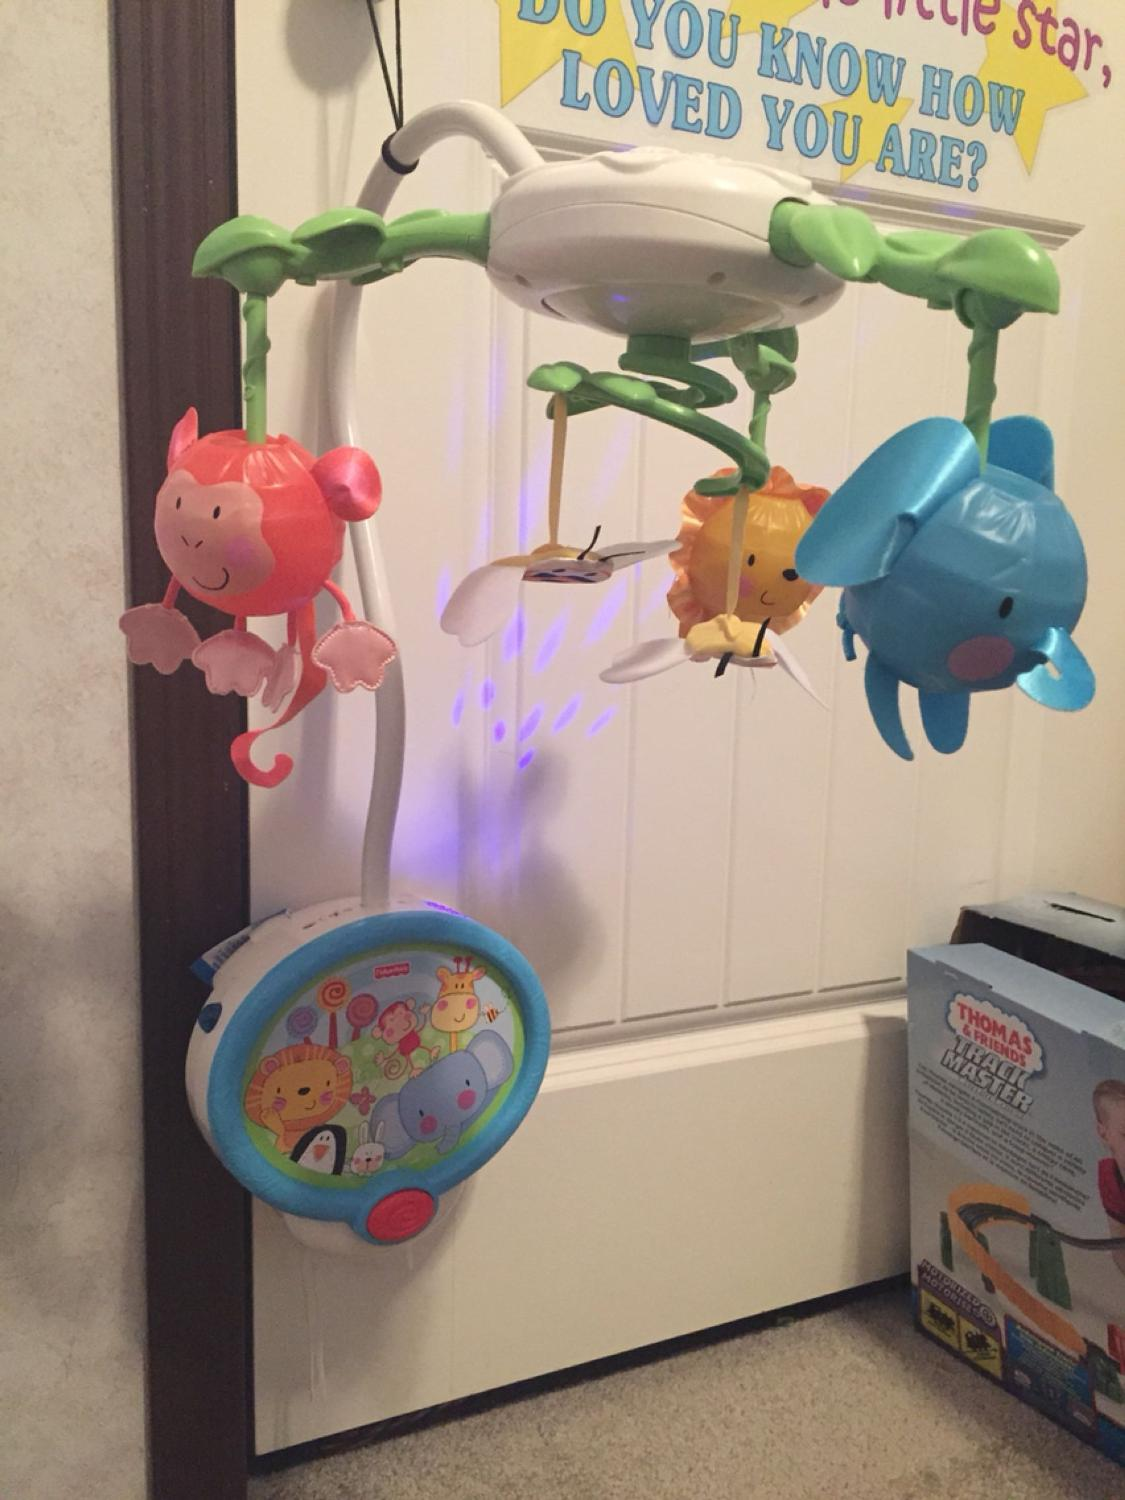 Best fisher price baby mobile lights up starts into ceiling lights up starts into ceiling animals light up and go up and down and it also plays soothing music euc for sale in dawson creek british columbia aloadofball Images